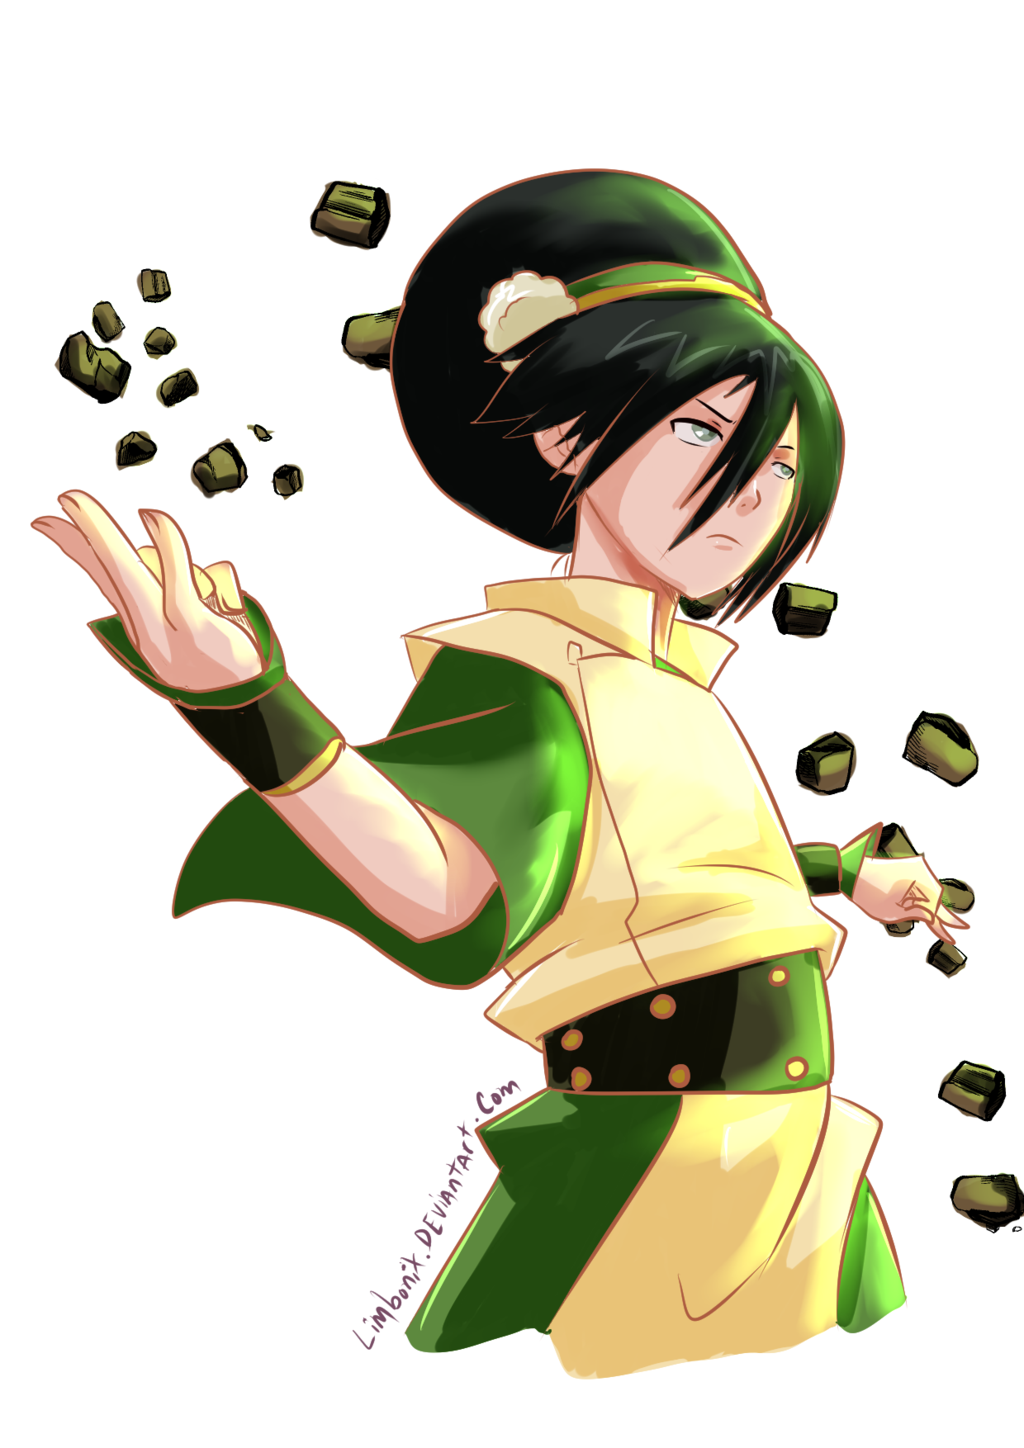 Toph beifong clipart svg royalty free library Toph beifong by Limbonix | Anime & Manga | Avatar aang ... svg royalty free library